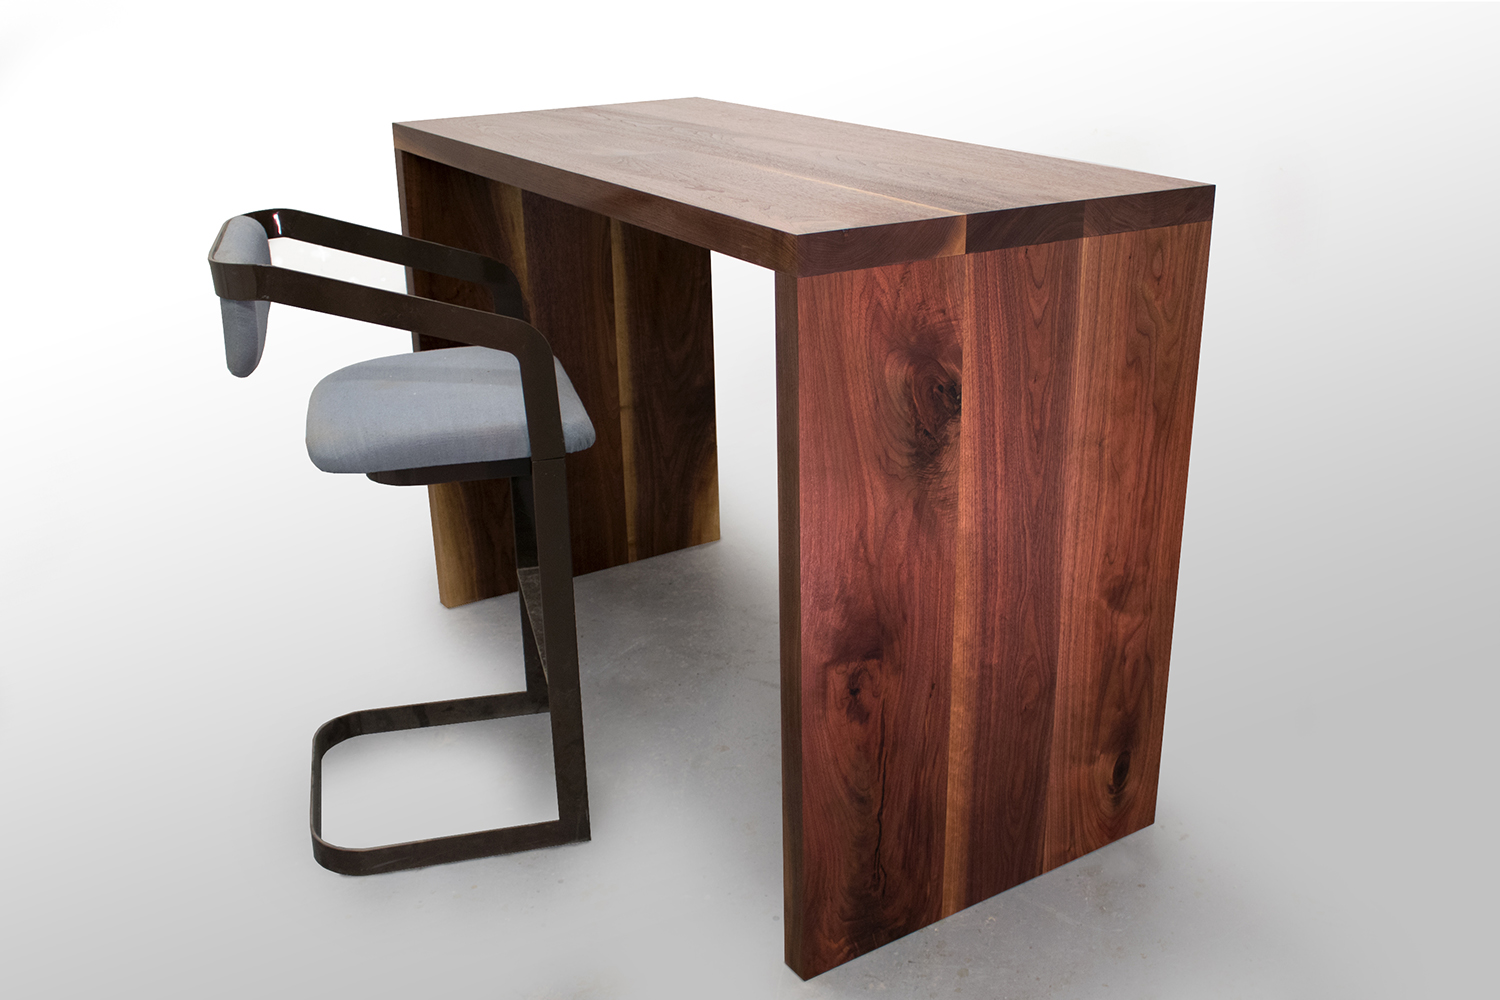 5 foot bar table with chair.jpg